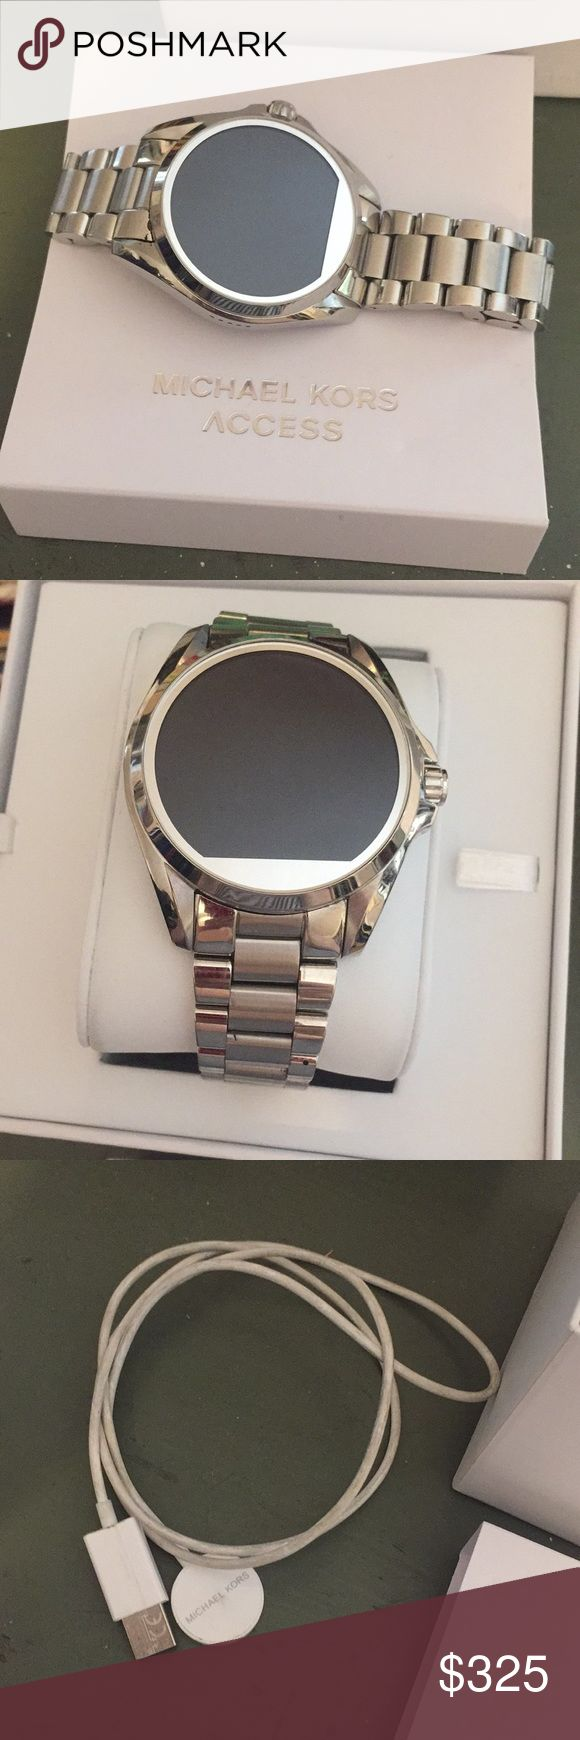 Micheal kors MK Bradshaw silver access smart watch Michael Kors Access Bradshaw Silver-Tone Smartwatch Great used condition. No scratches on the face or marks.  Worn twice. Includes the charger, box and optional clasp.  Works with Apple or android via an app.  $395 + tax I paid at the MK store.  100% authentic.  Can provide serial code. Water Resistant Up To 1 Atm Display notifications for texts, calls, emails. Tracks steps, distance, and calories.  Digital Movement  Social Media Updates…